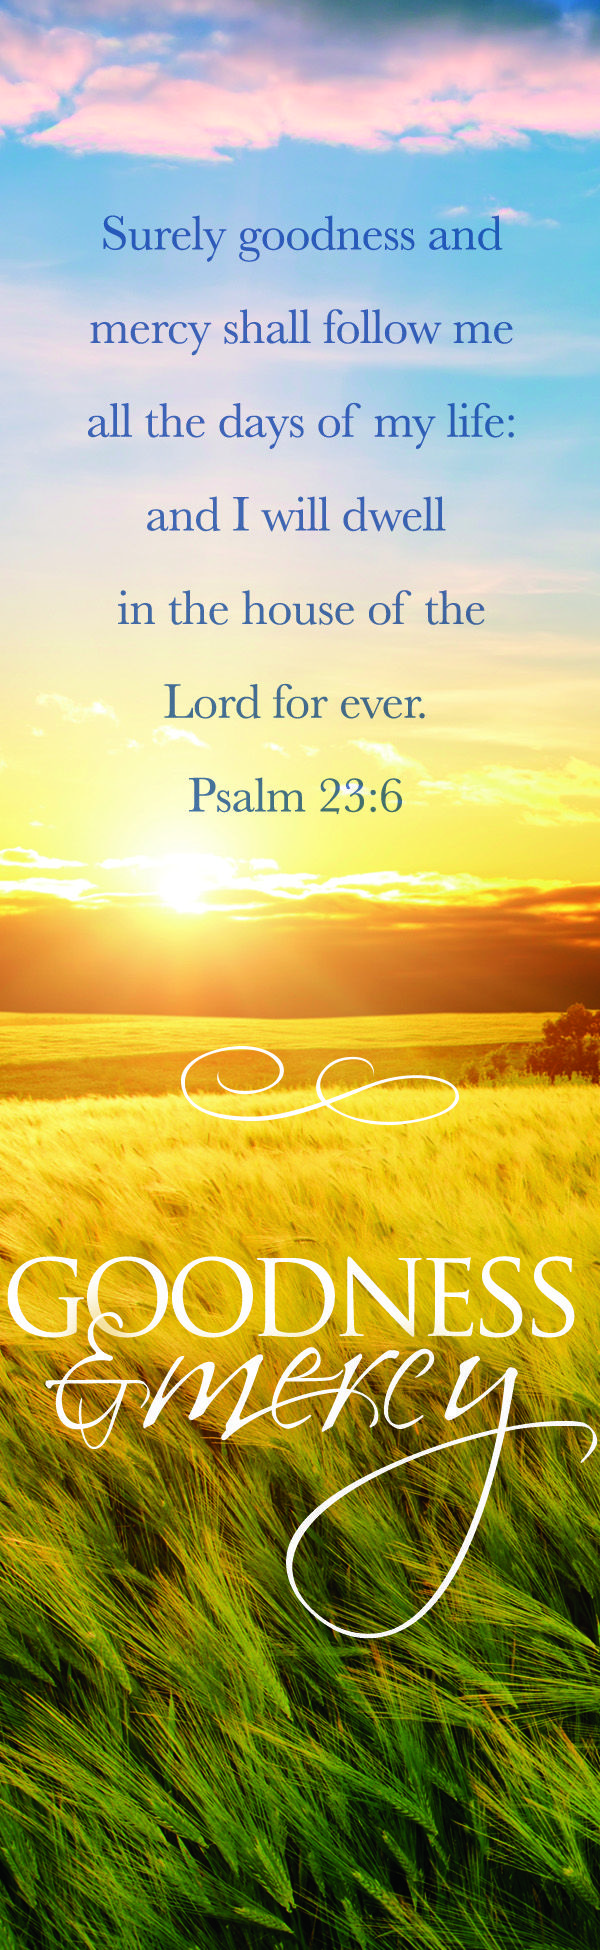 Psalm 23:6 Thank you lord for your loving kindness and your mercy.  I am not worthy but I am THANKFUL for YOUR LOVE!!!